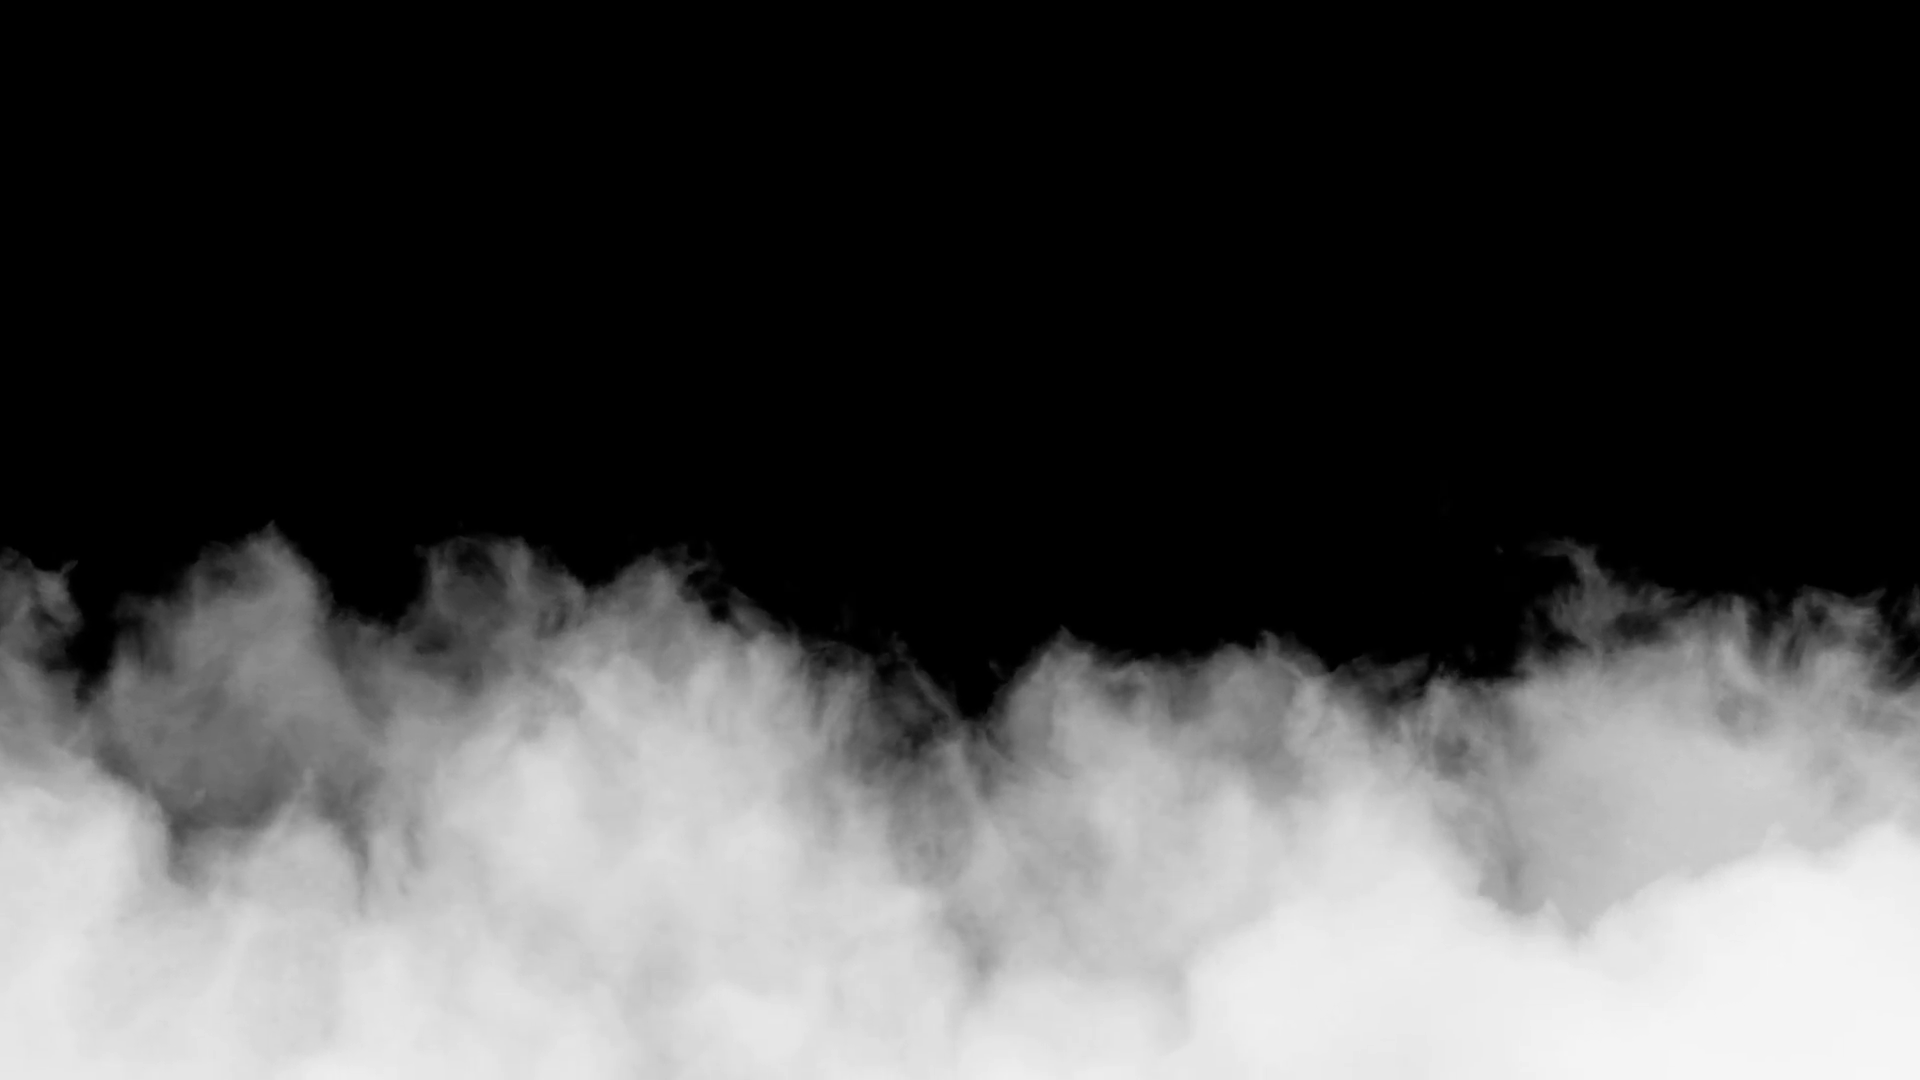 Smoke Hd Png Transparent Smoke Hd Png Images Pluspng Editing Background Light Background Images Blur Photo Background